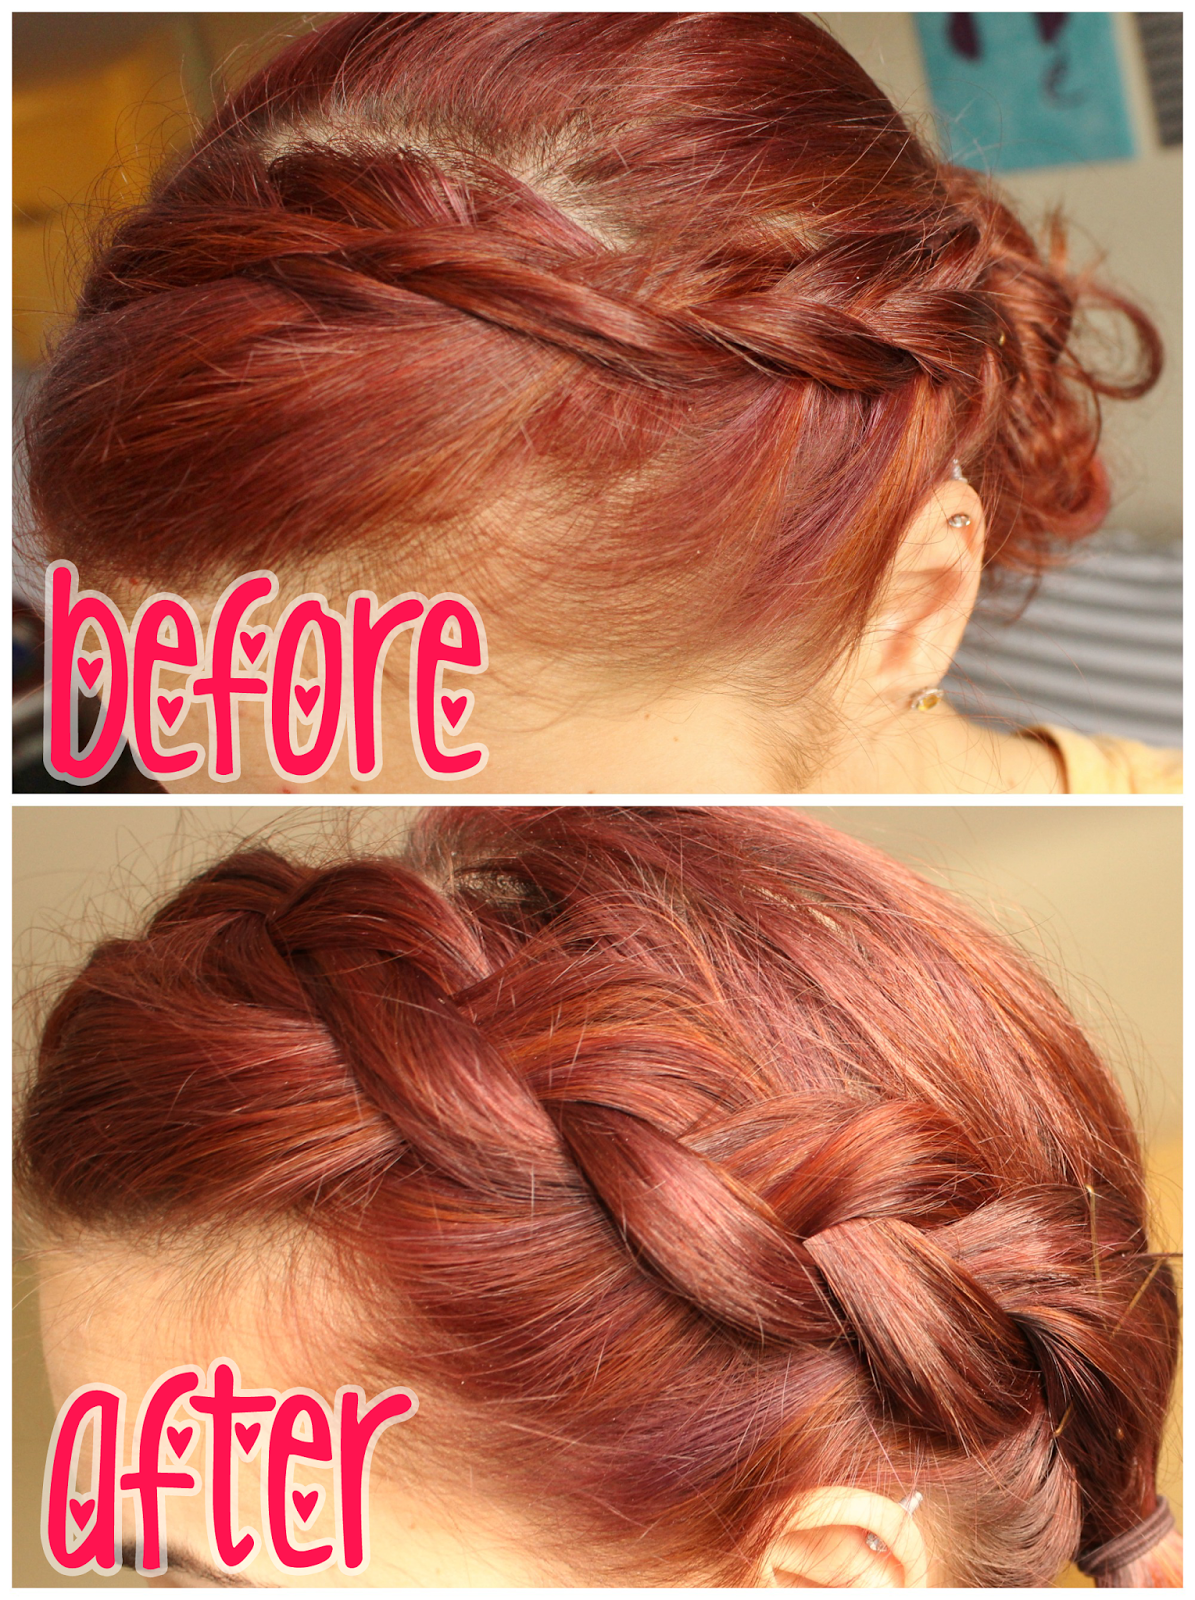 how to: get a thick bohemian braid - even if you have thin hair